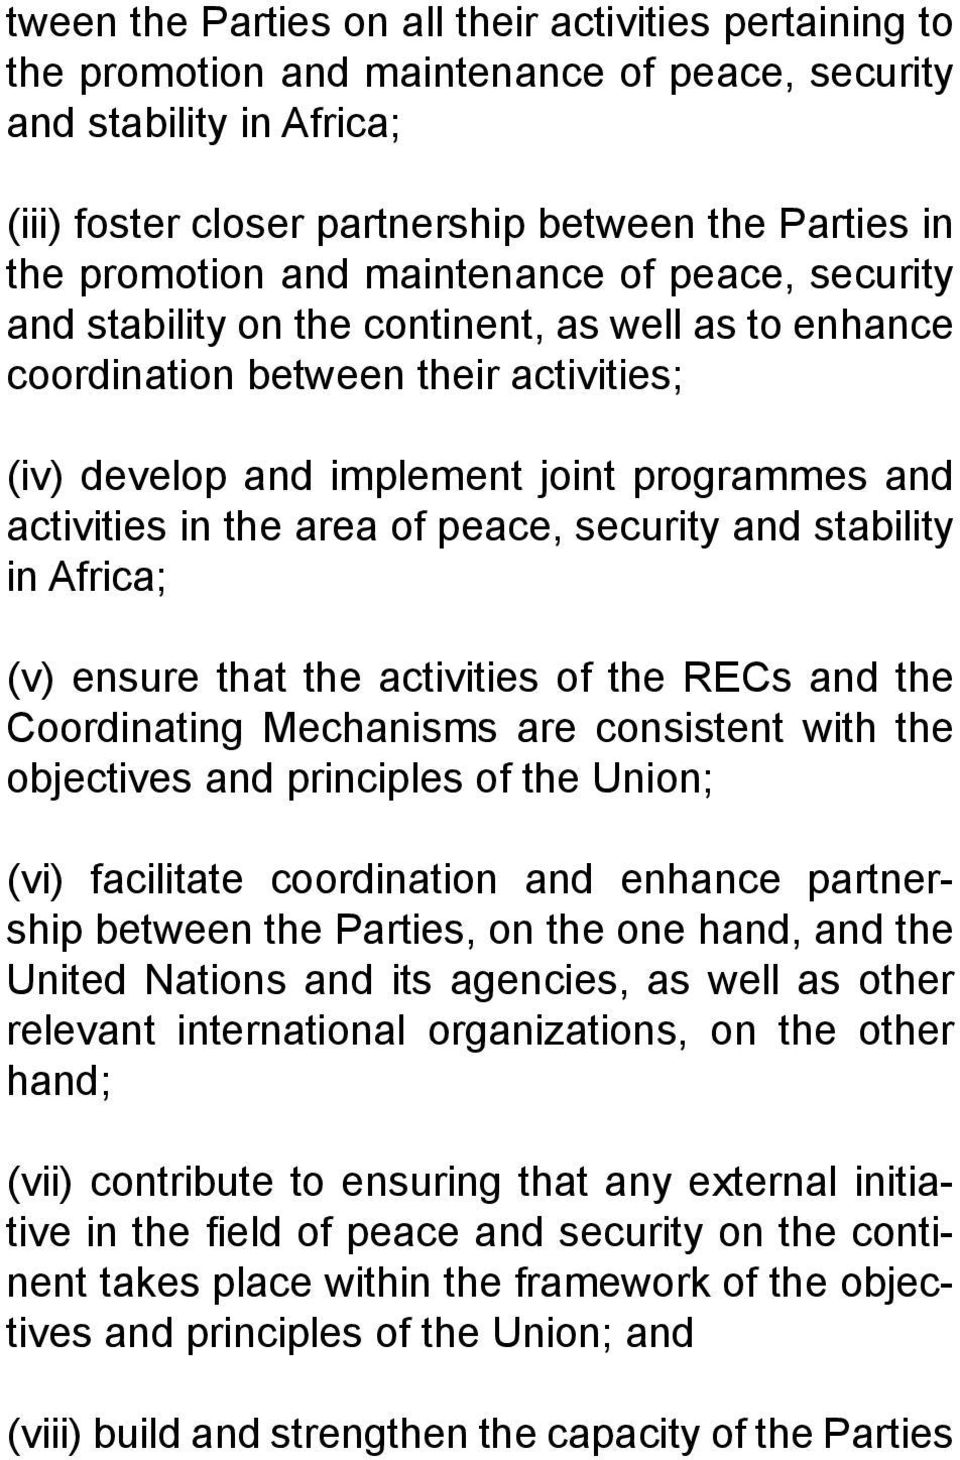 of peace, security and stability in Africa; (v) ensure that the activities of the RECs and the Coordinating Mechanisms are consistent with the objectives and principles of the Union; (vi) facilitate